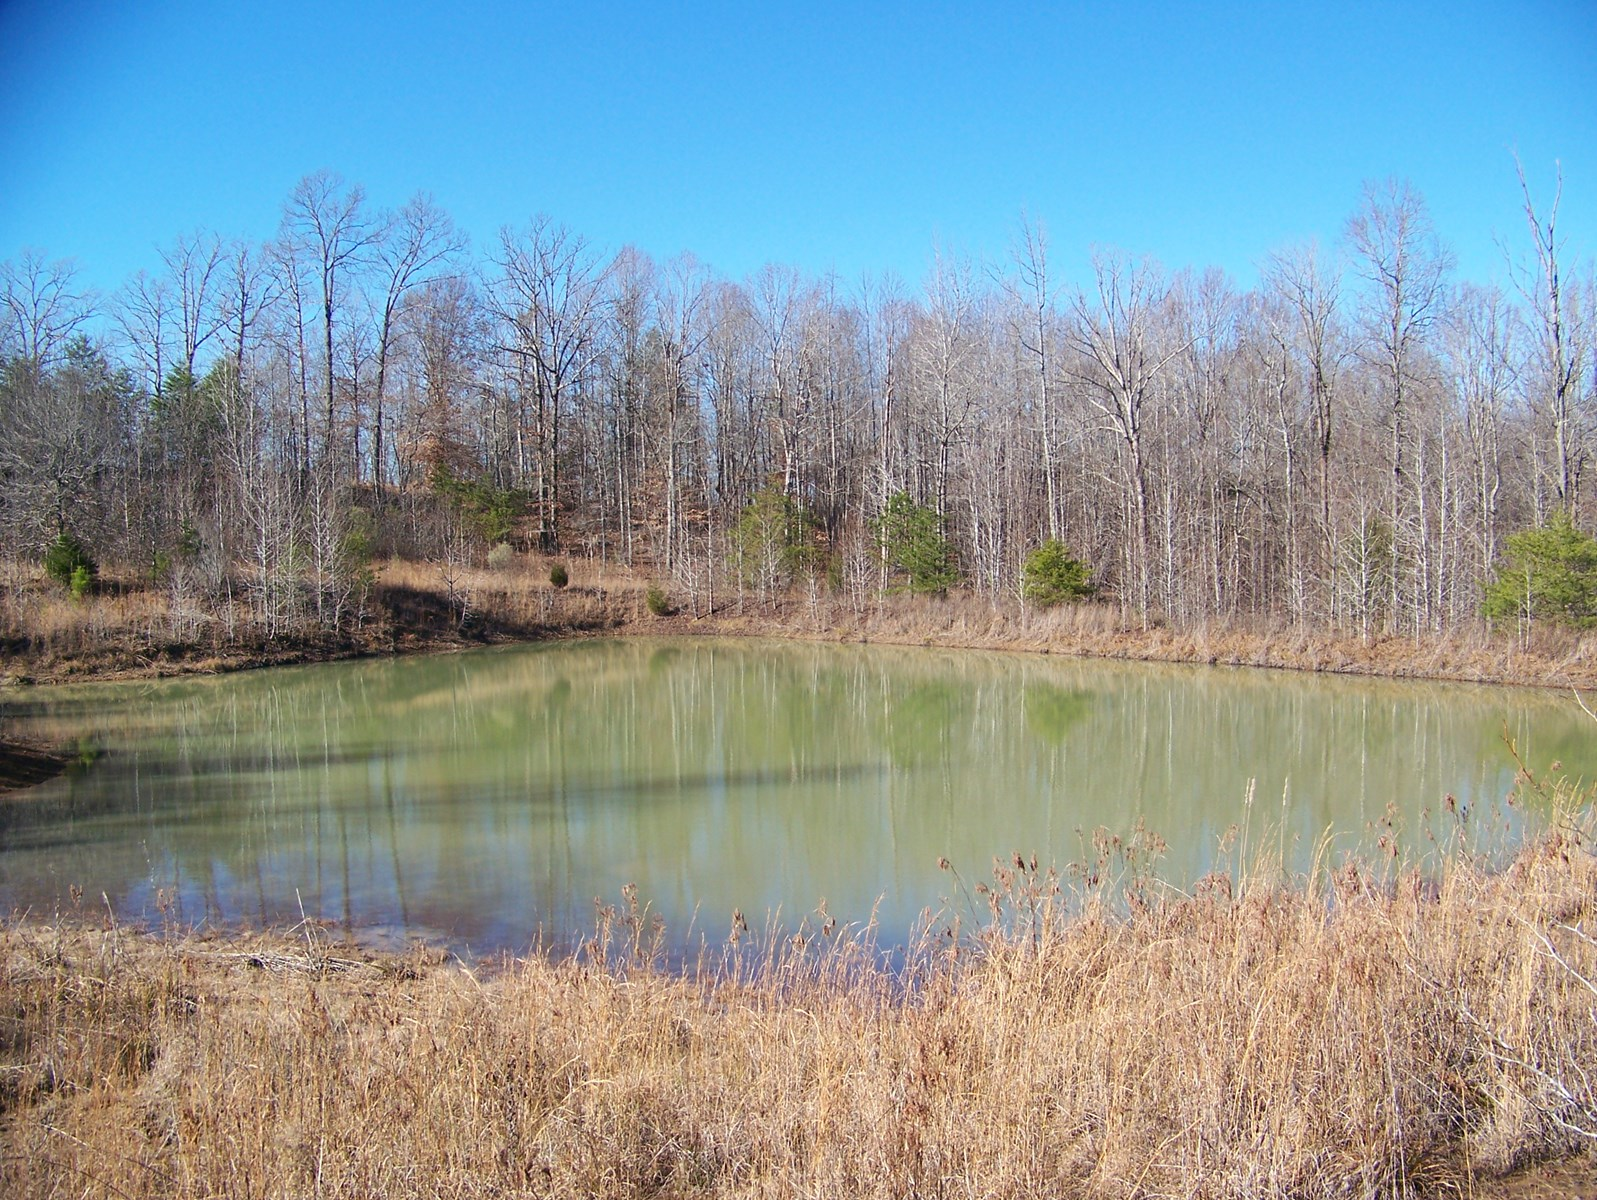 LAND FOR SALE NEAR TN RIVER WITH EXISTING BASEMENT & POND